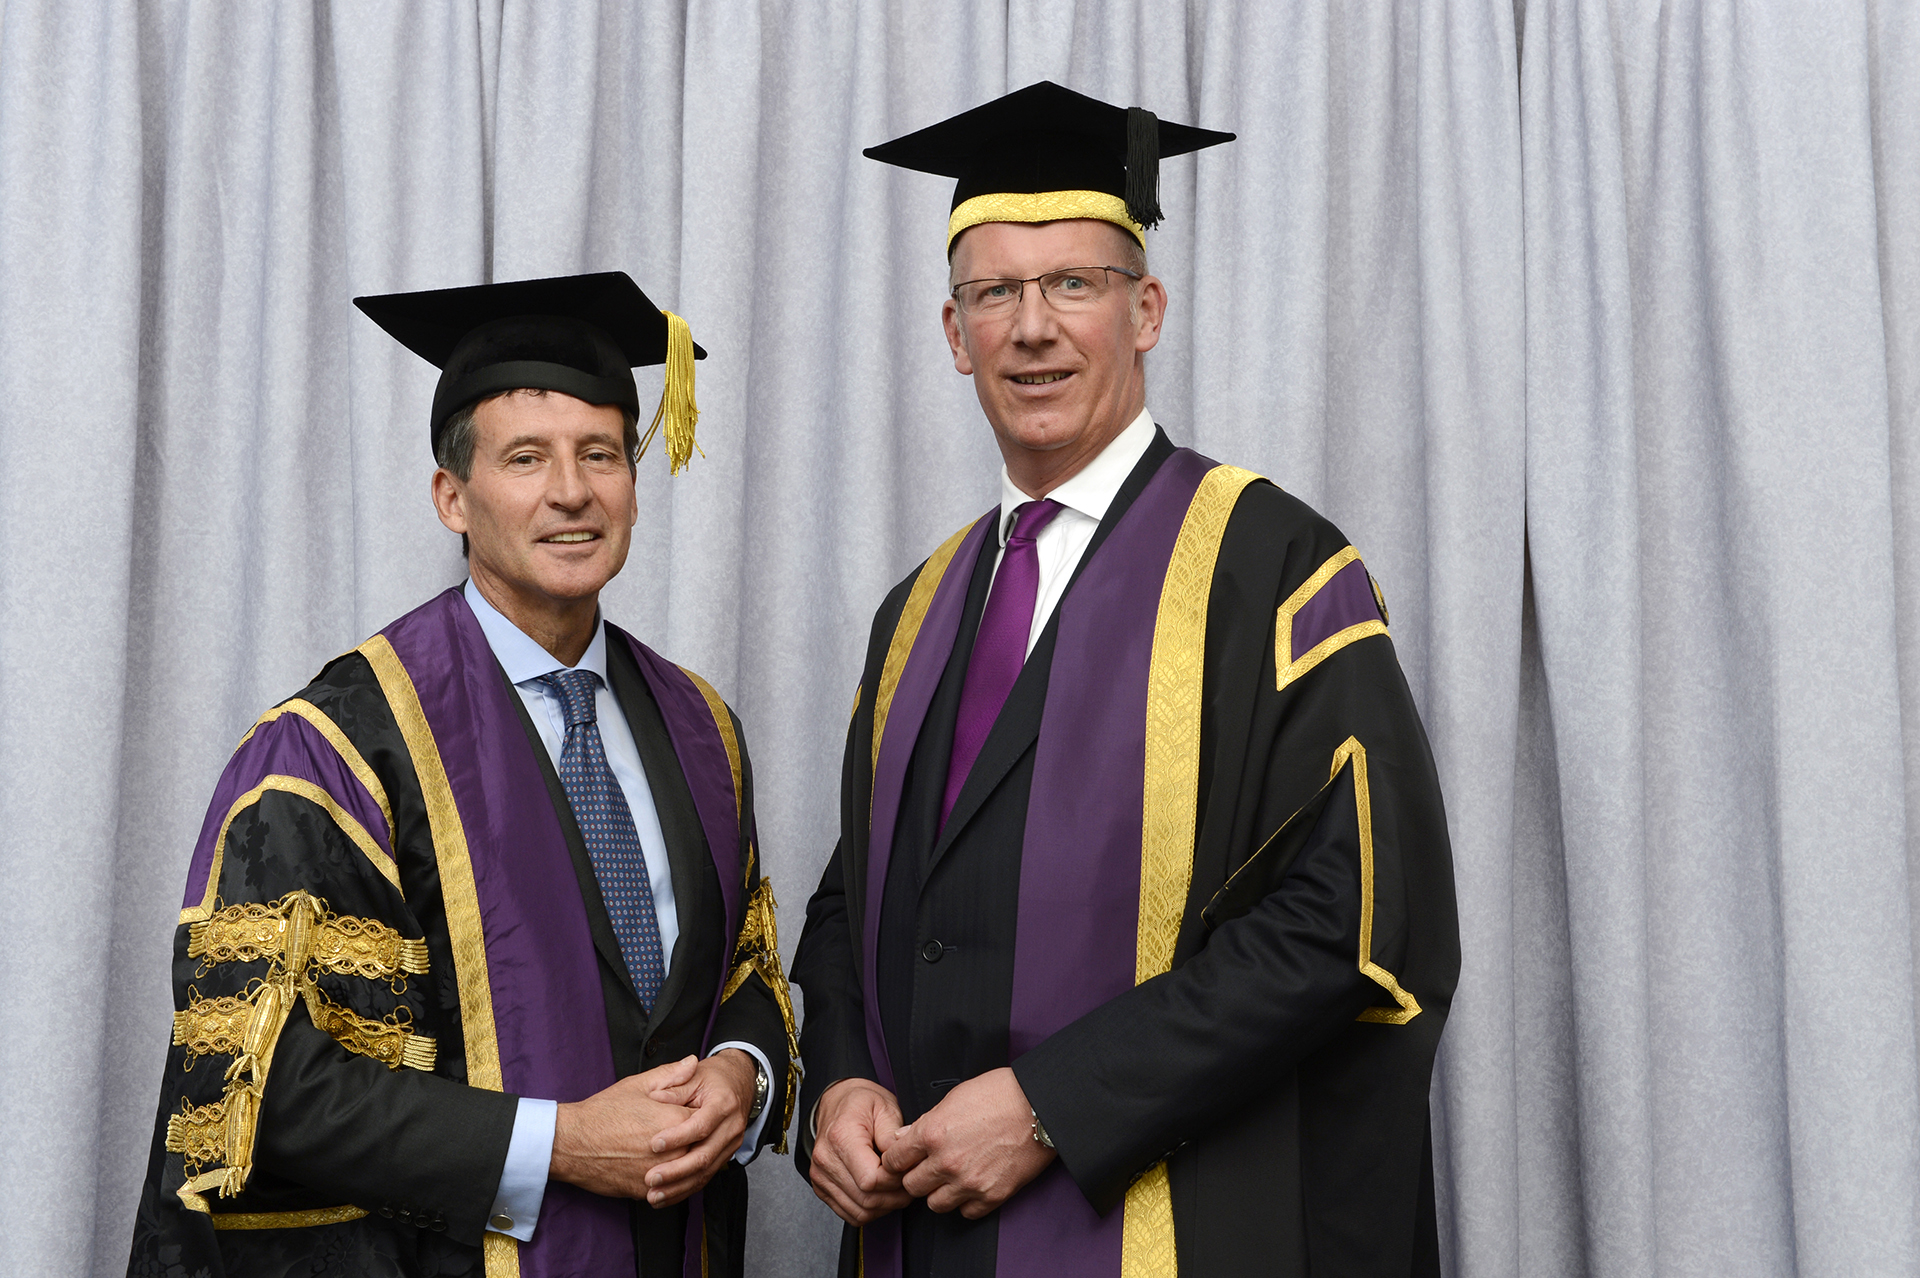 What does it mean to be a University Chancellor?